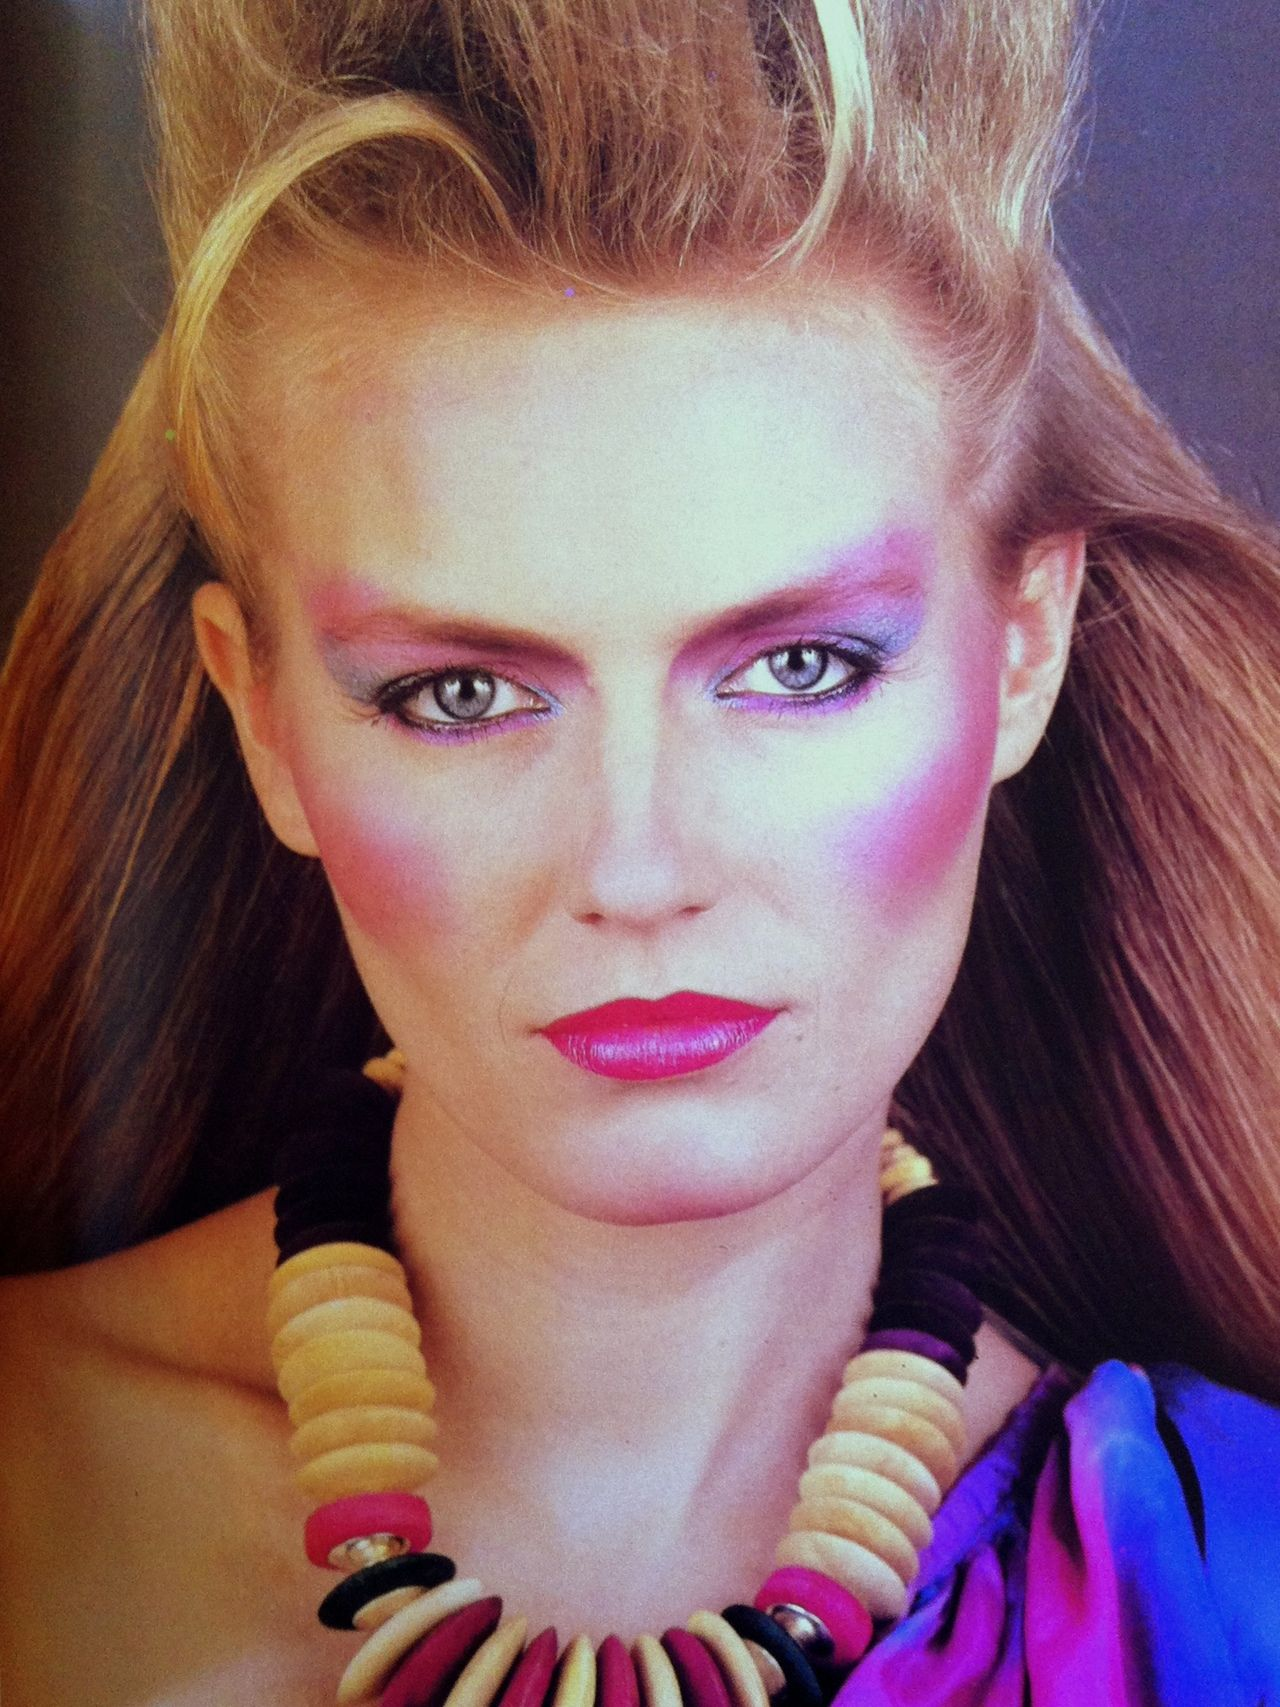 Pin by Victoria Raber on ♥80's♥ | Pinterest | 80 s, Makeup ...